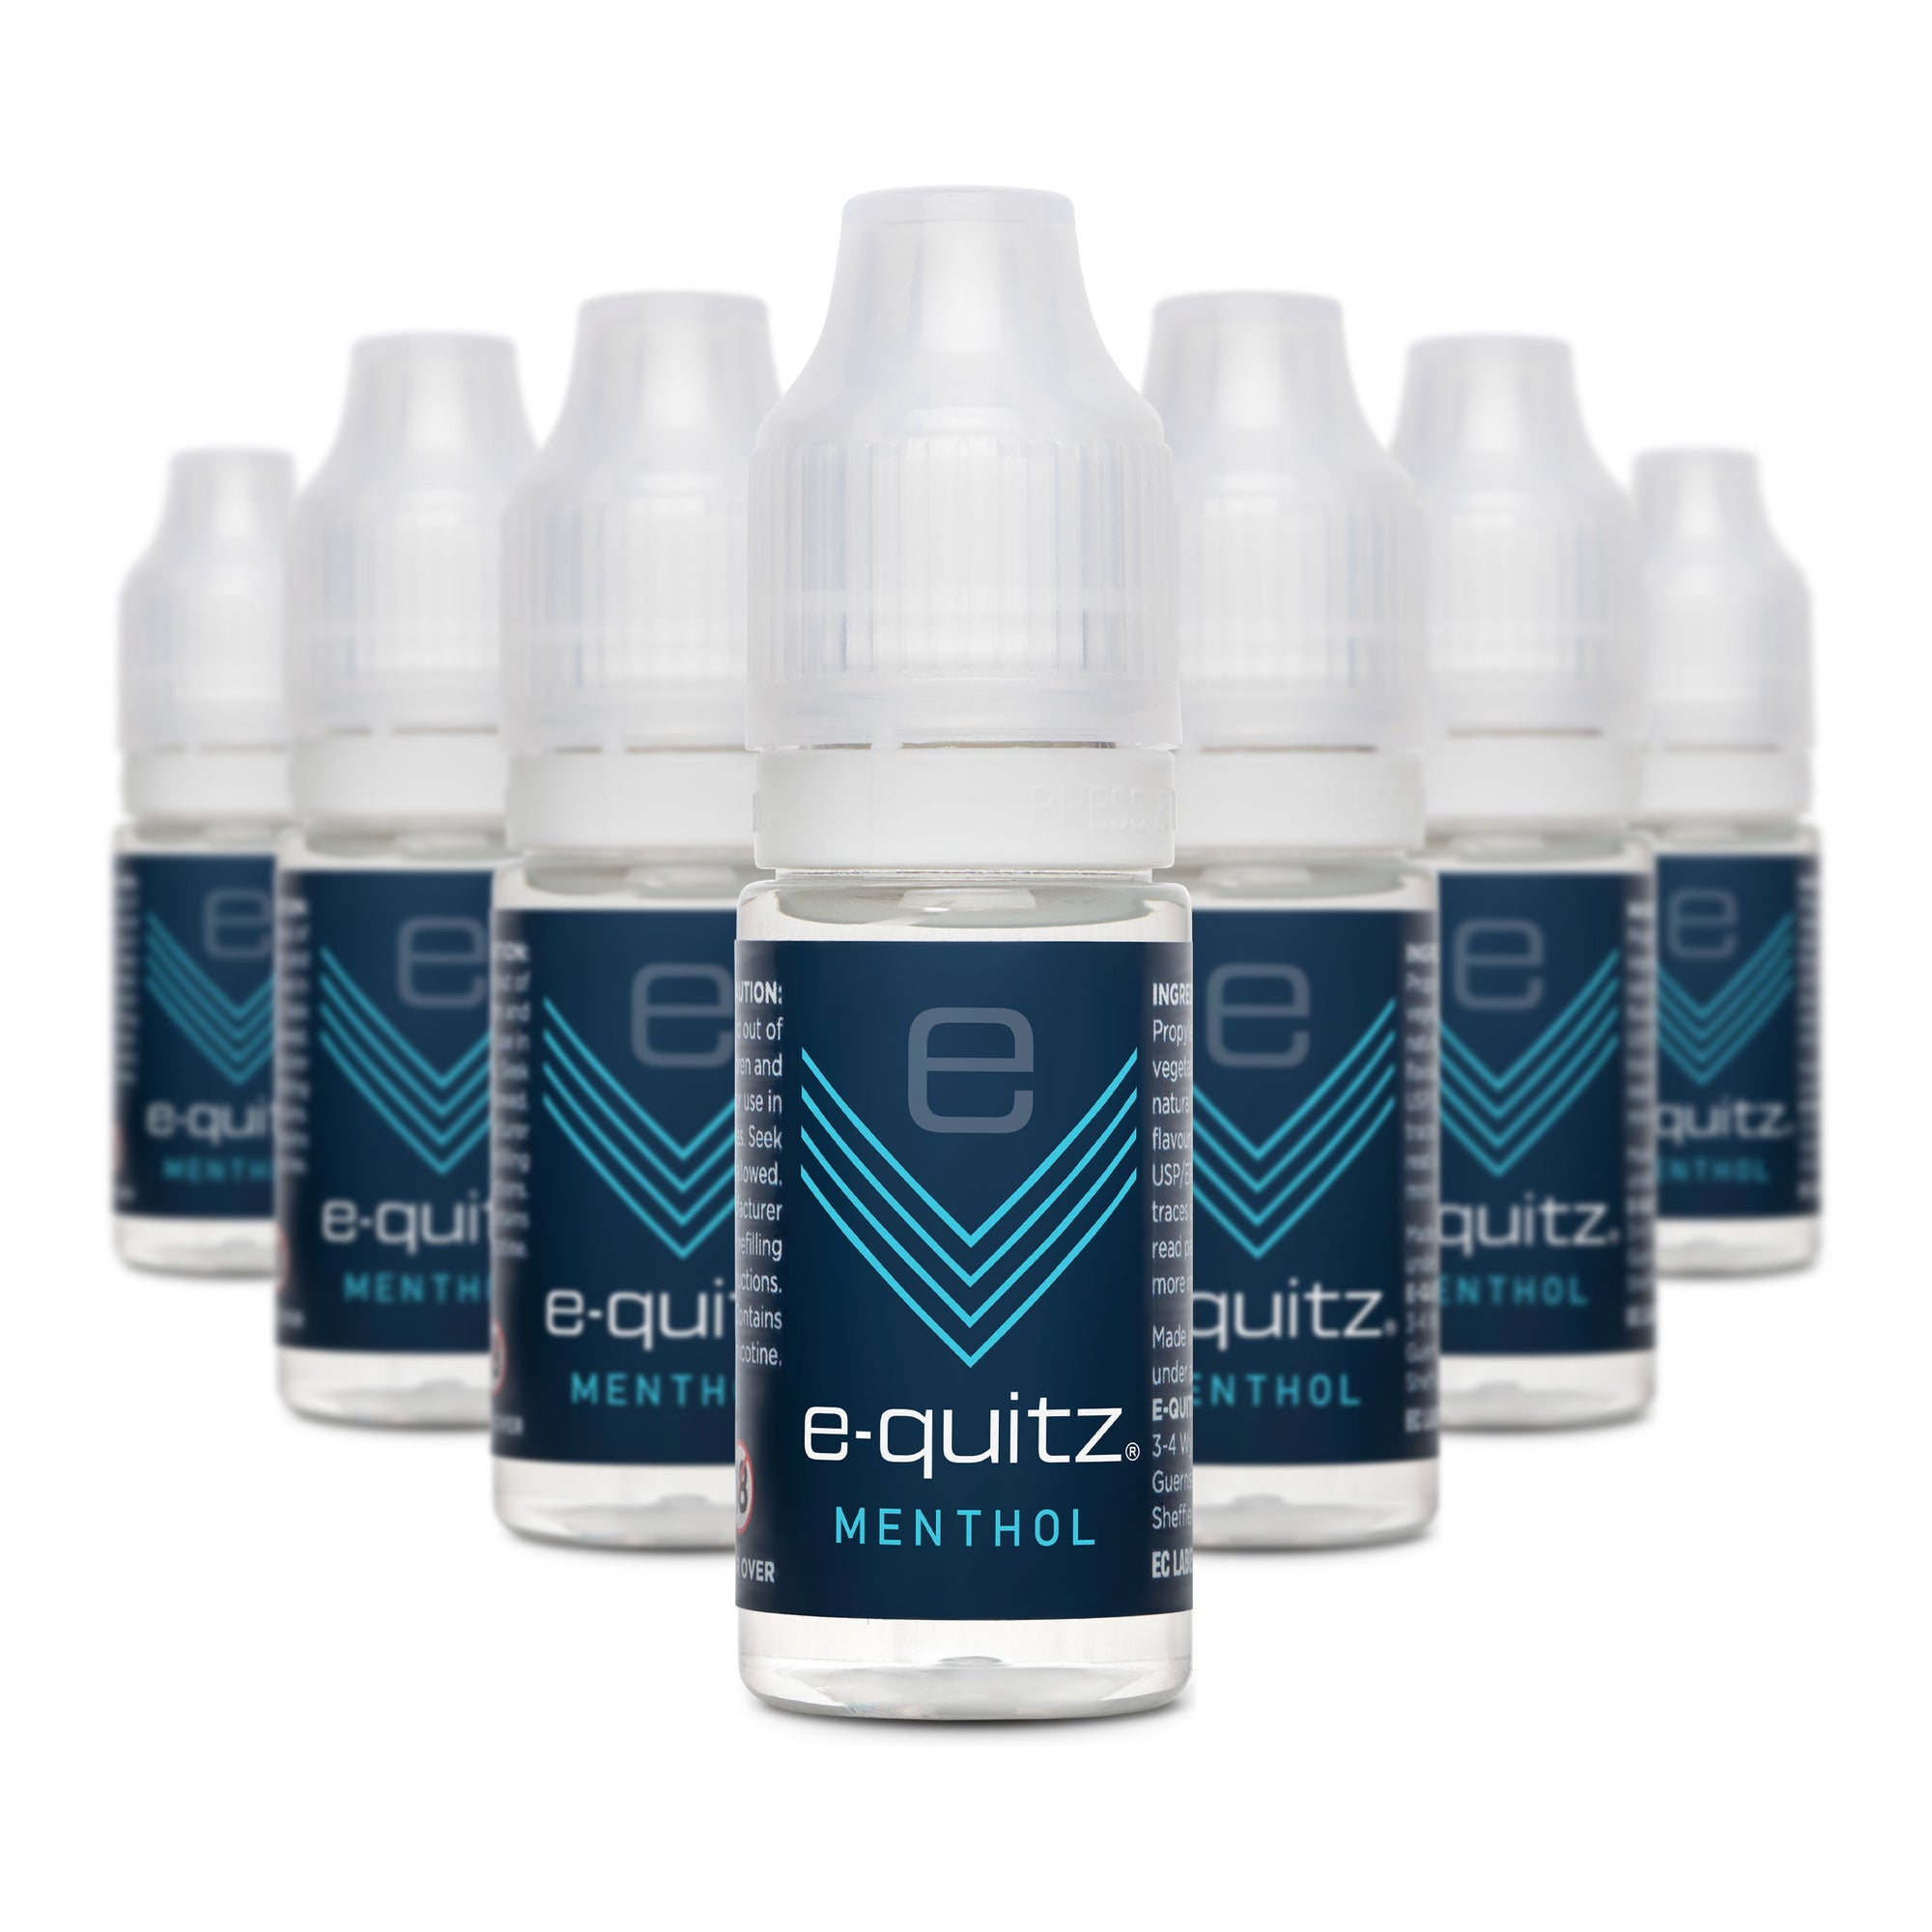 e-quitz menthol subscription e-liquid range